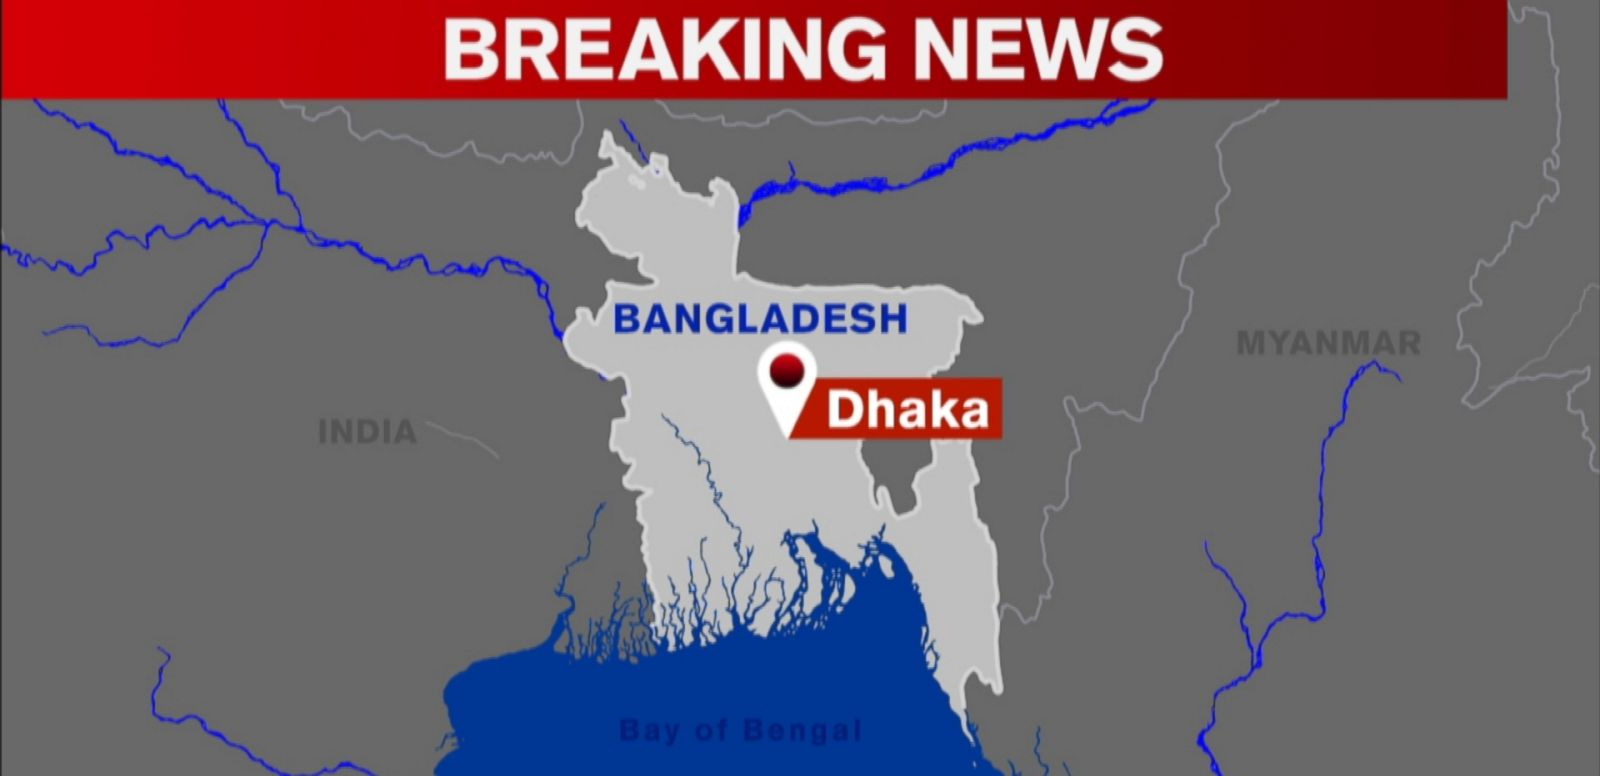 VIDEO: ISIS Claims Responsibility for Bangladesh Cafe Attack